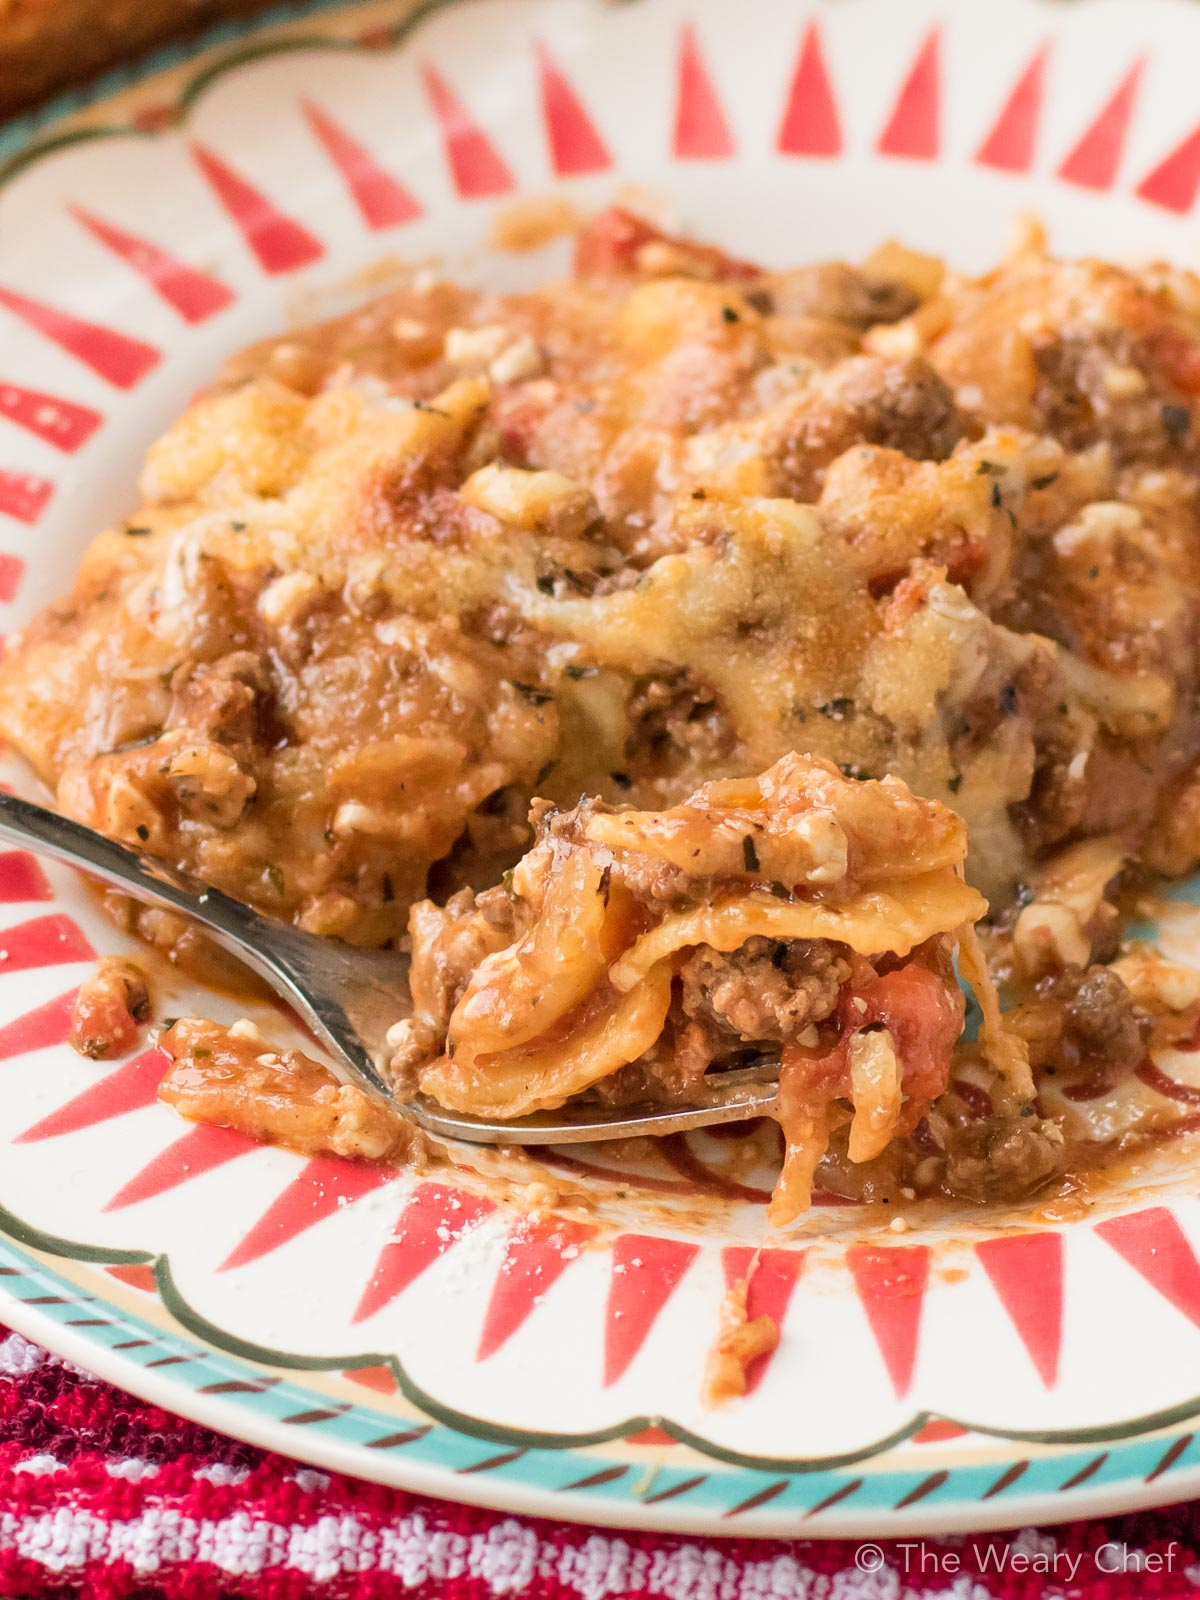 You can get this lazy lasagna in the oven in about 20 minutes! This hearty recipe is perfect for family dinners, potlucks, or a make ahead meal.